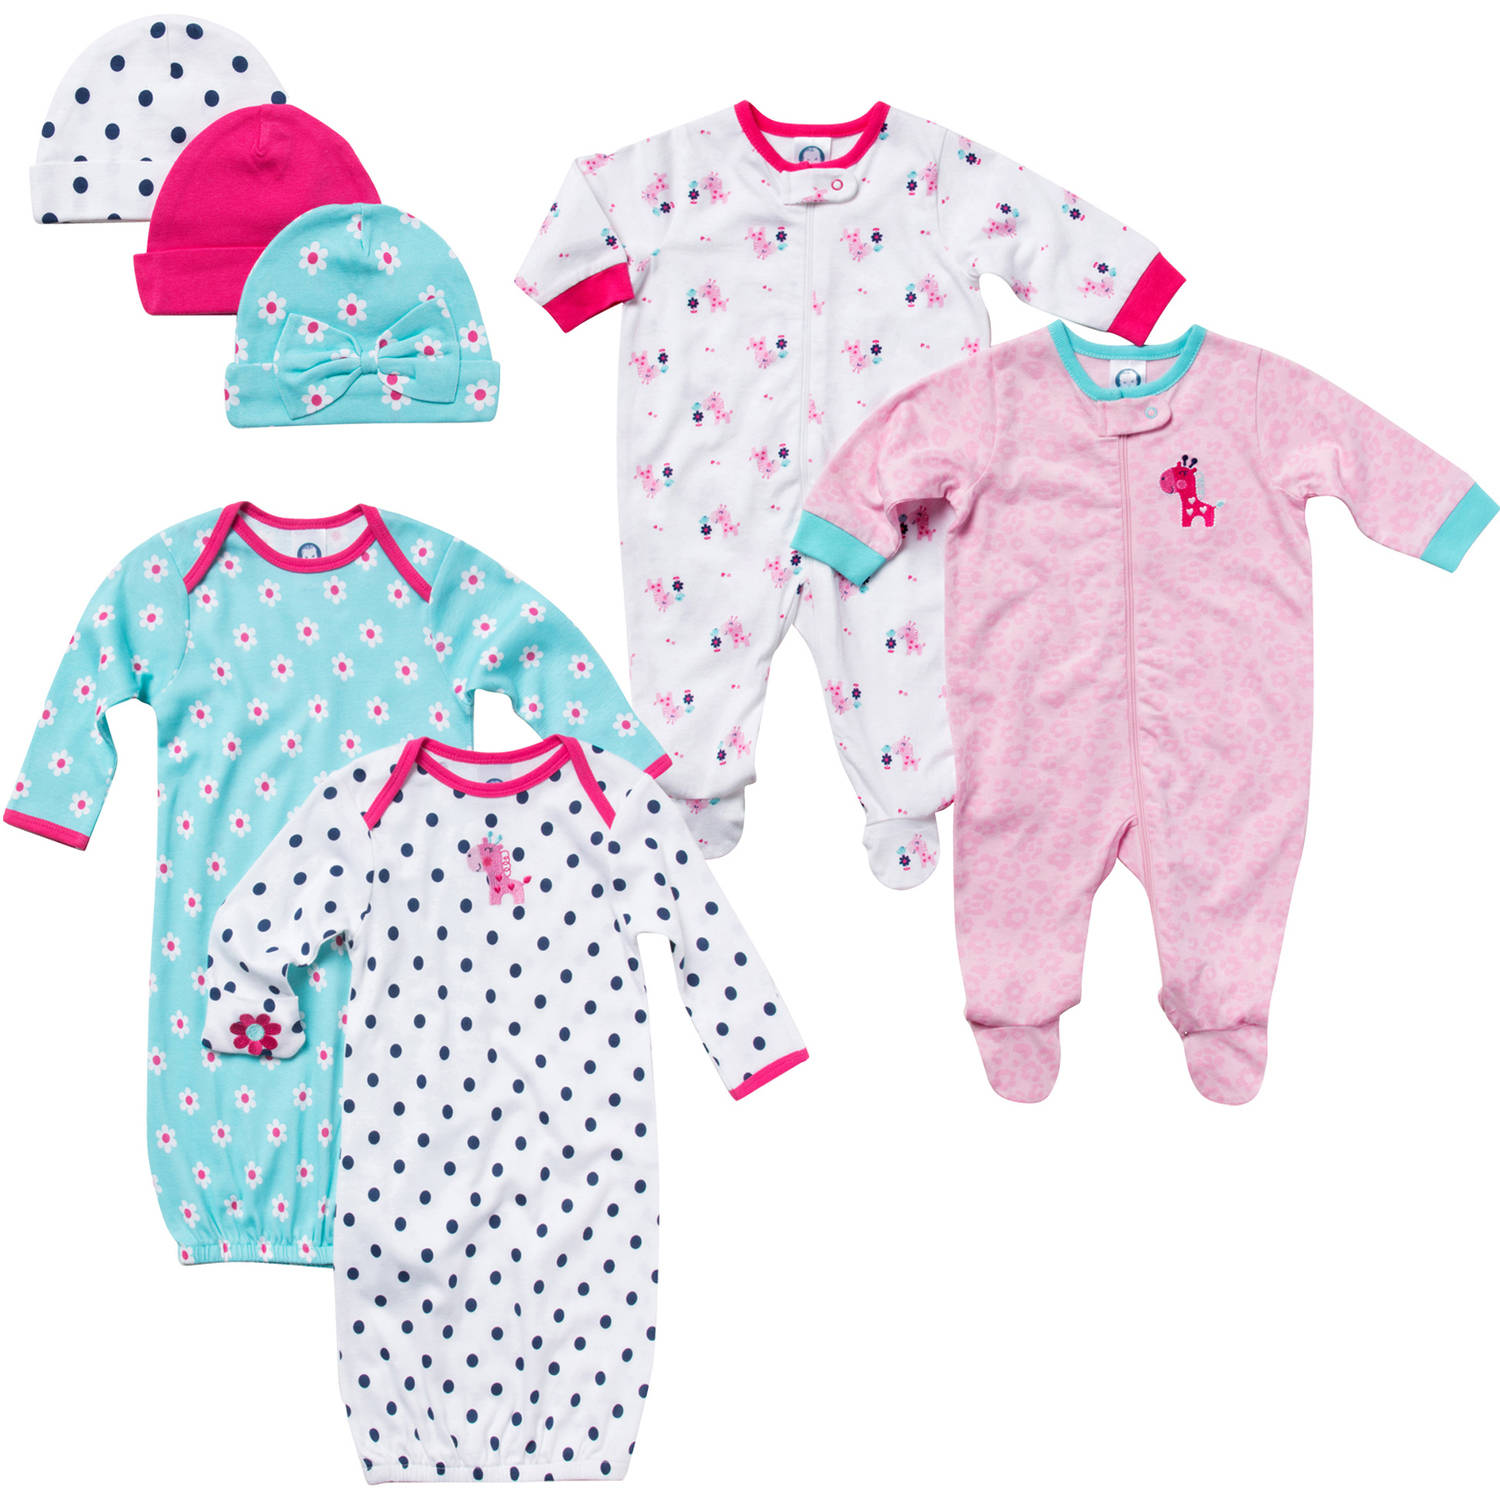 Gerber Newborn Baby Girl 7-Piece Day & Night Gift Set 0-3M